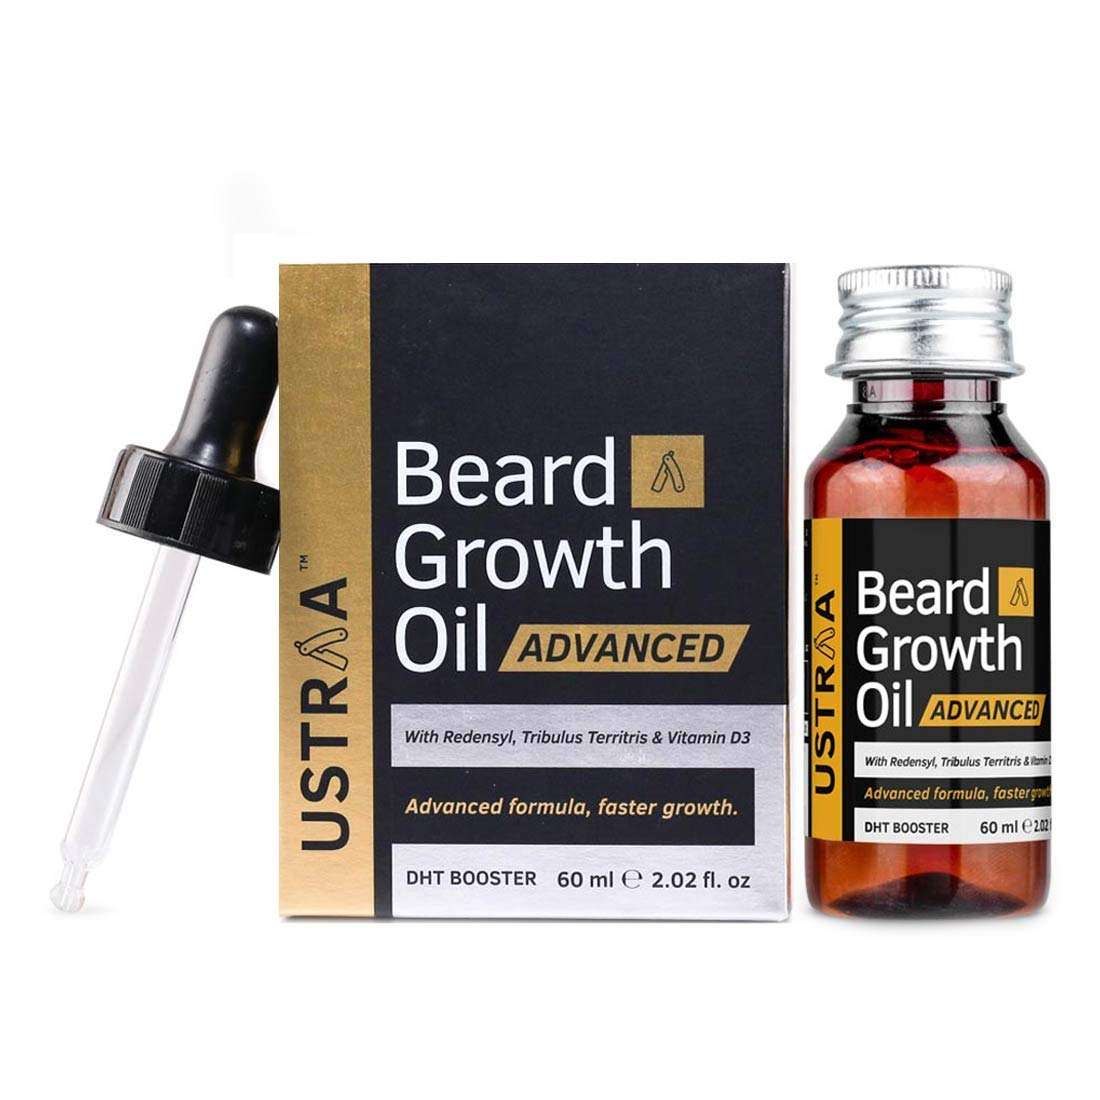 USTRAA Beard Growth Oil Advanced - 2.02 Oz - Beard Growth Oil for Patchy Beard, with Redensyl and DHT Booster, Nourishment & Moisturization, No Harmful Chemicals